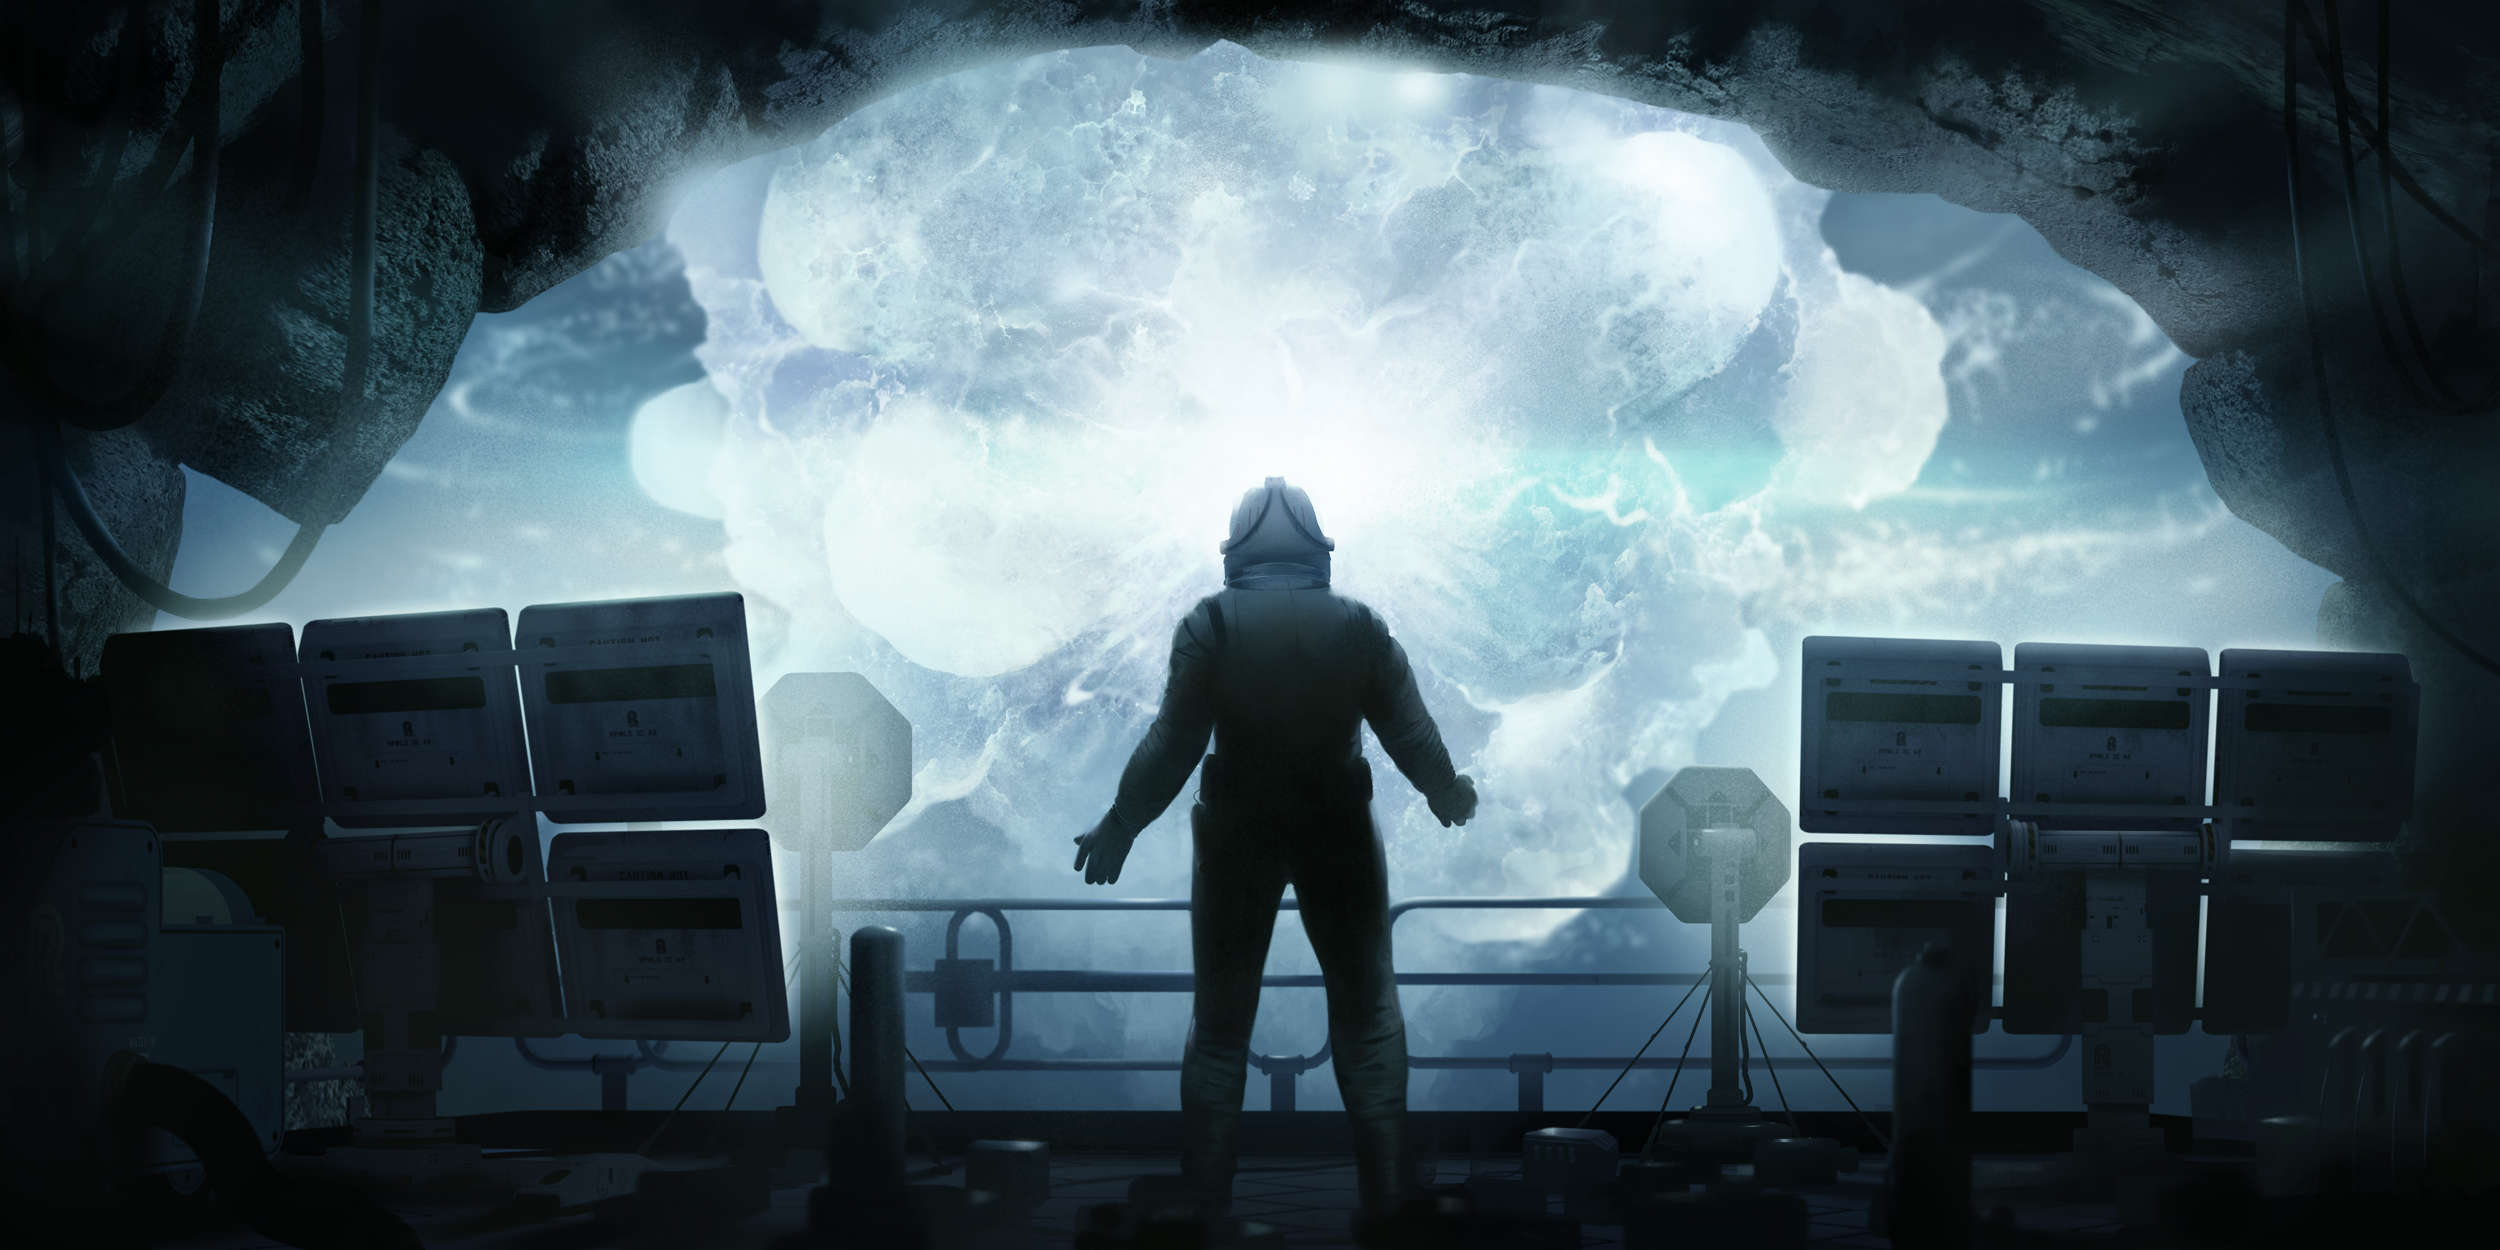 Pollen a virtual reality exploration game will be coming to Linux, Mac and Windows PC